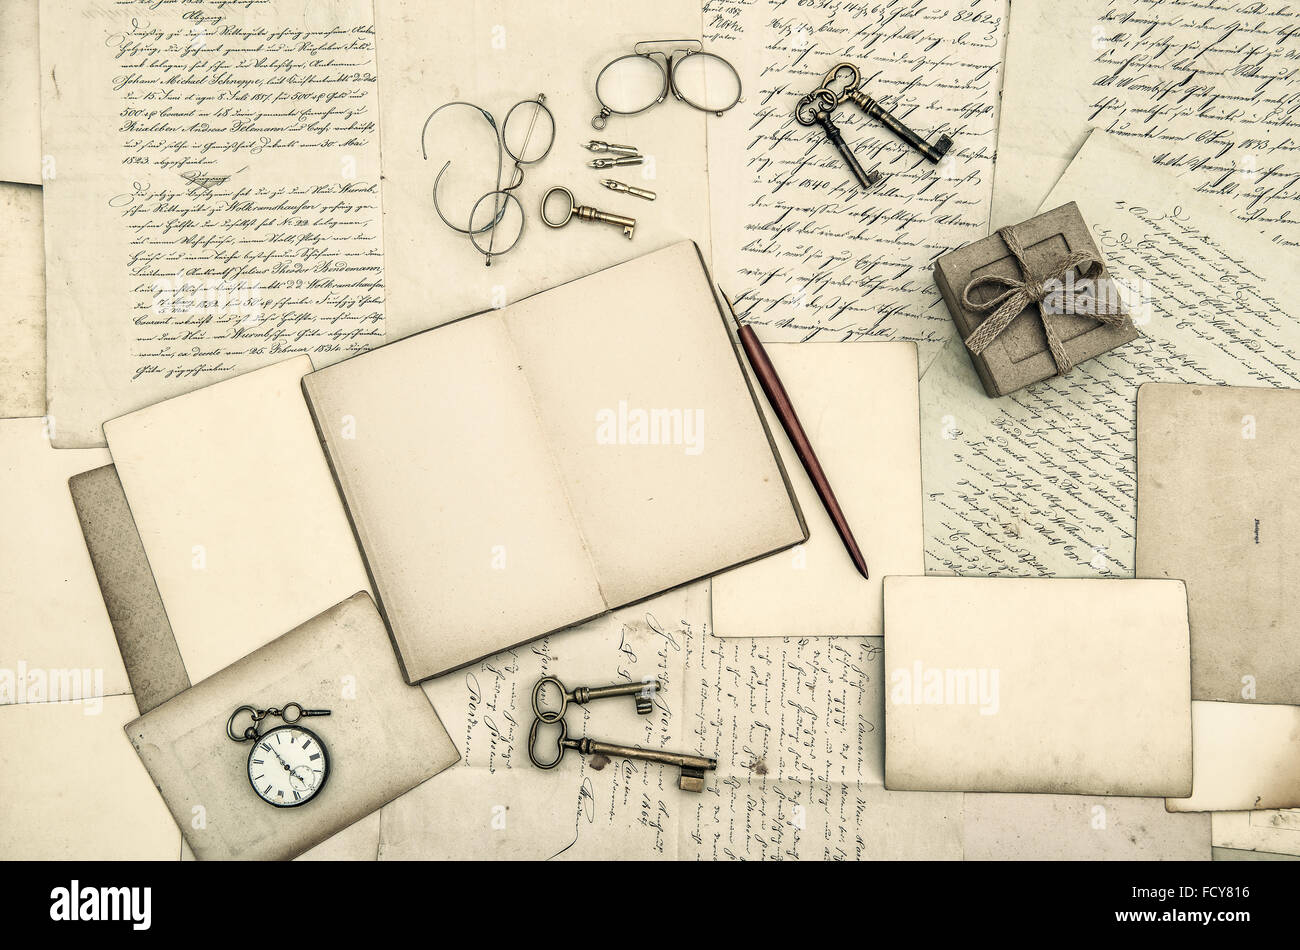 Vintage Office Accessories, Open Diary Book And Old Handwritten Letters.  Nostalgic Paper Background